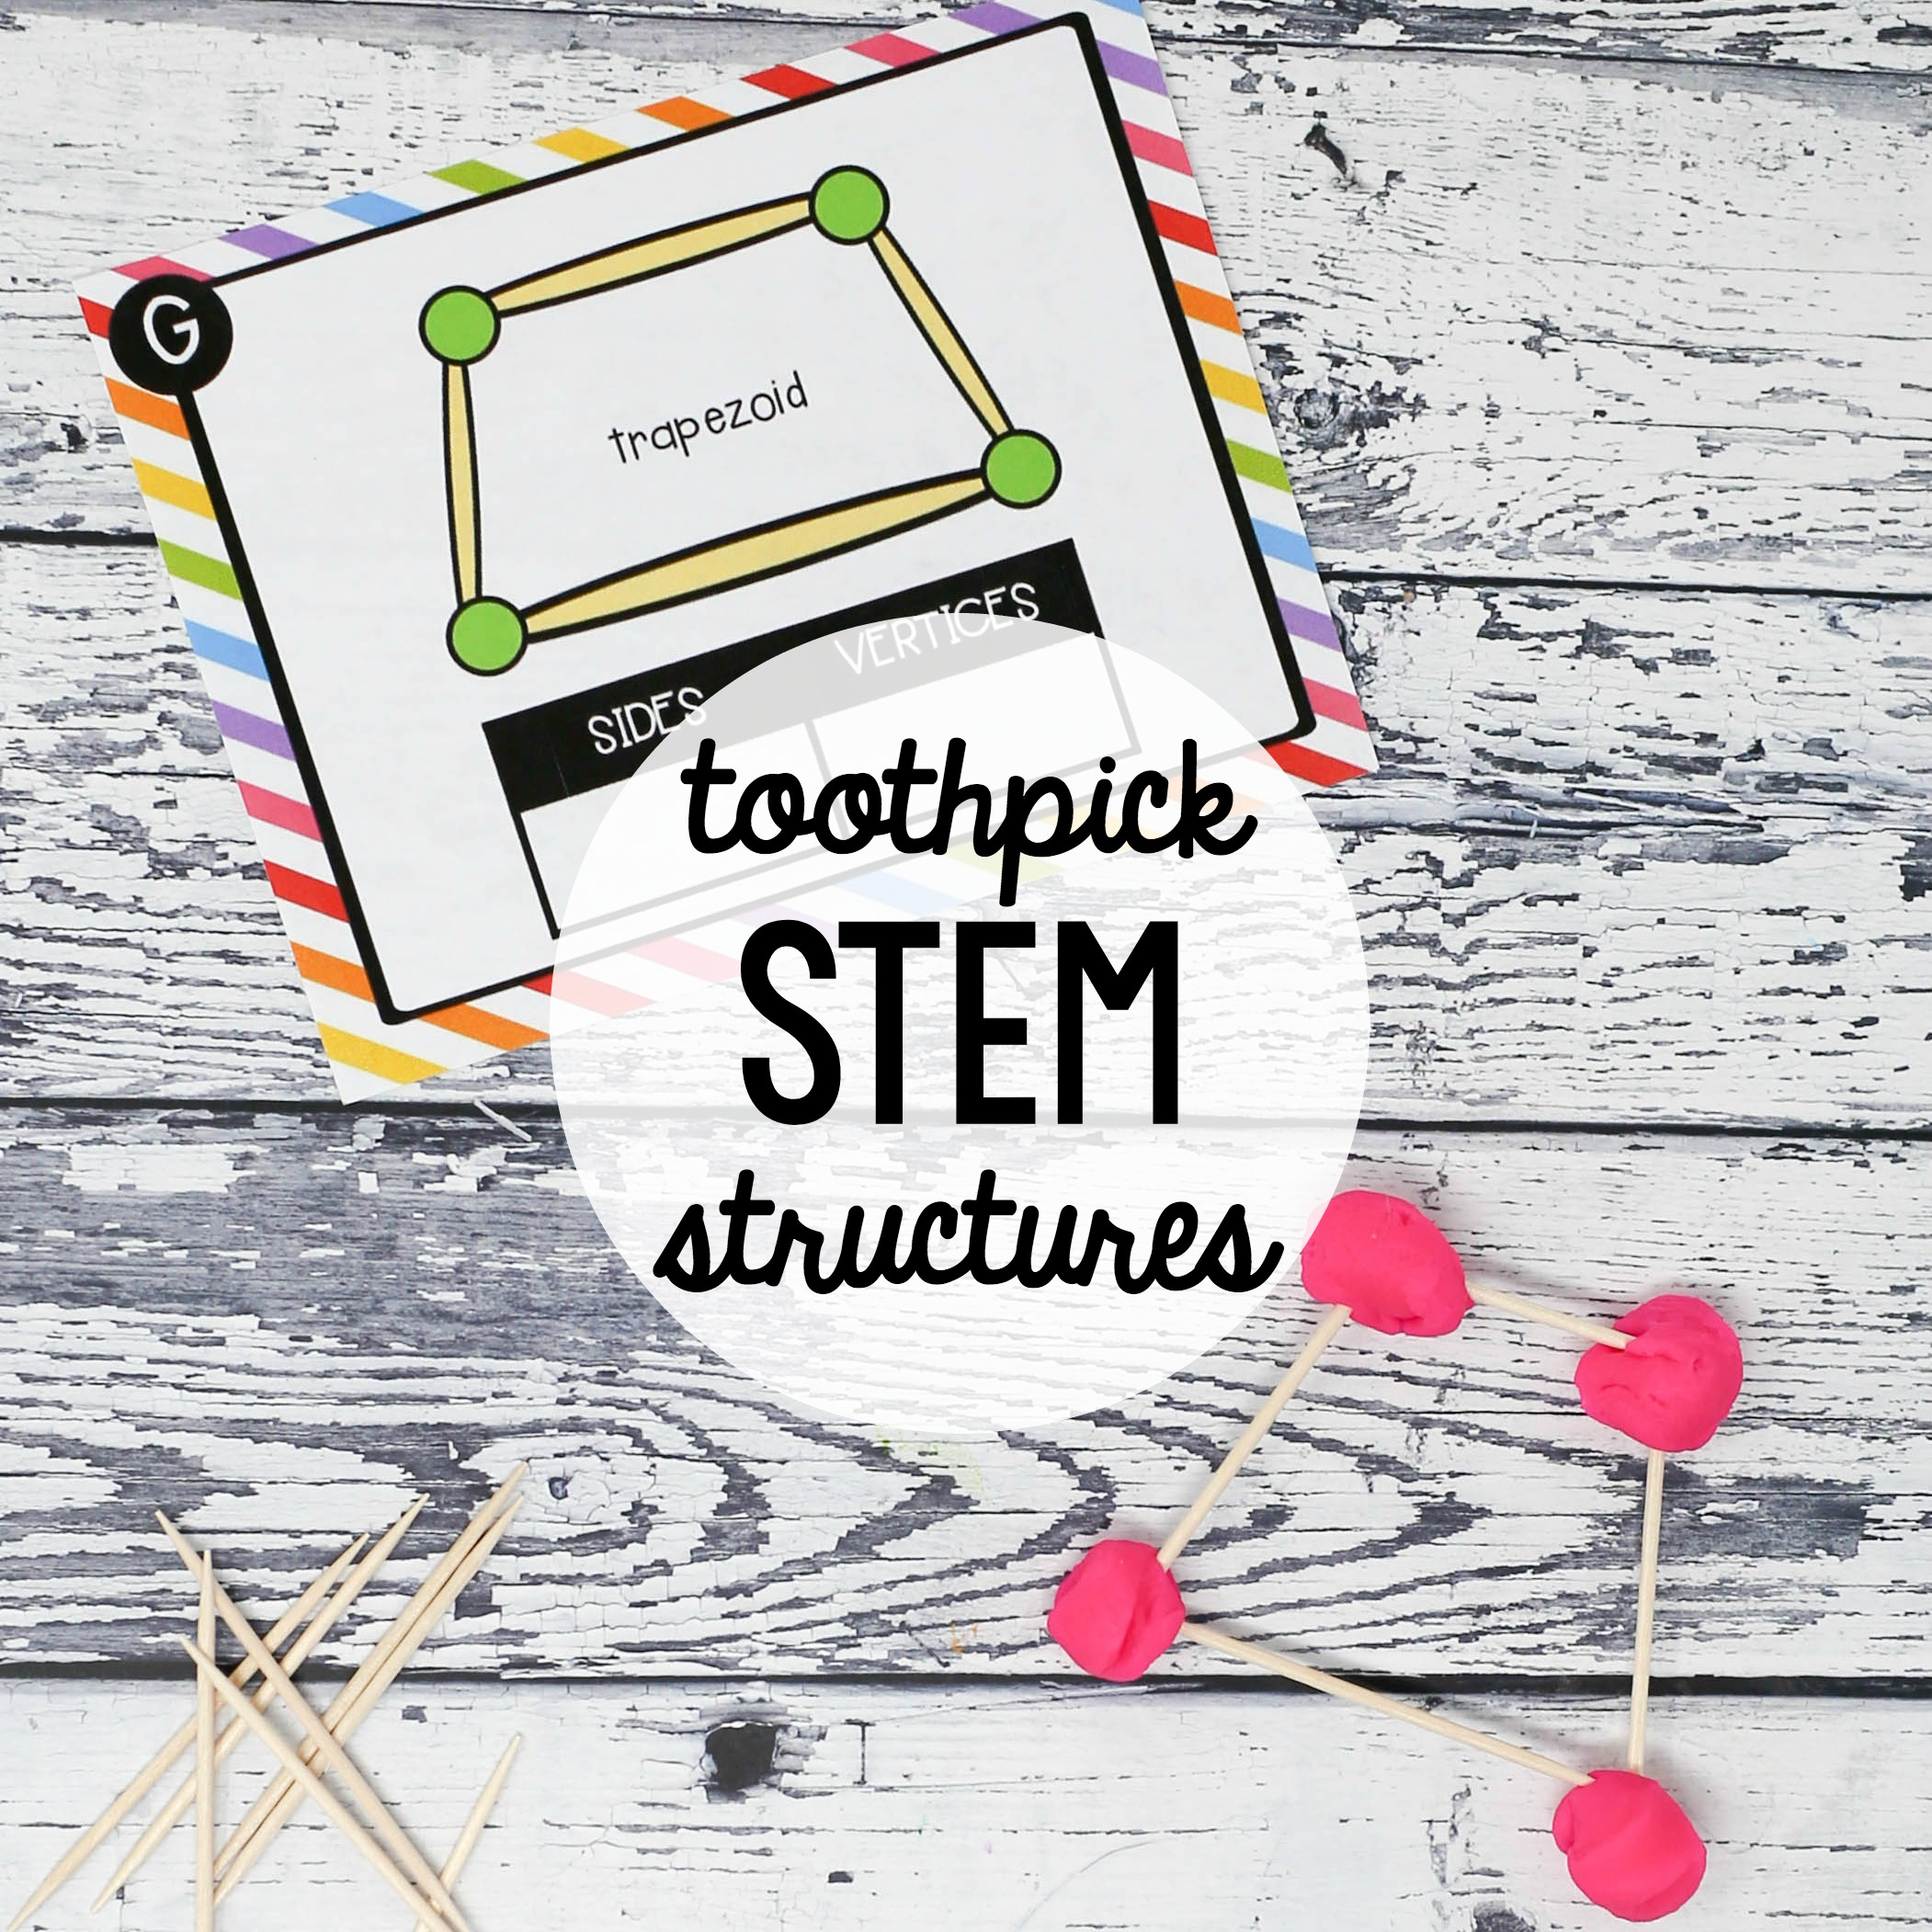 graphic about Building With Toothpicks and Marshmallows Printable called Toothpick STEM Constructions